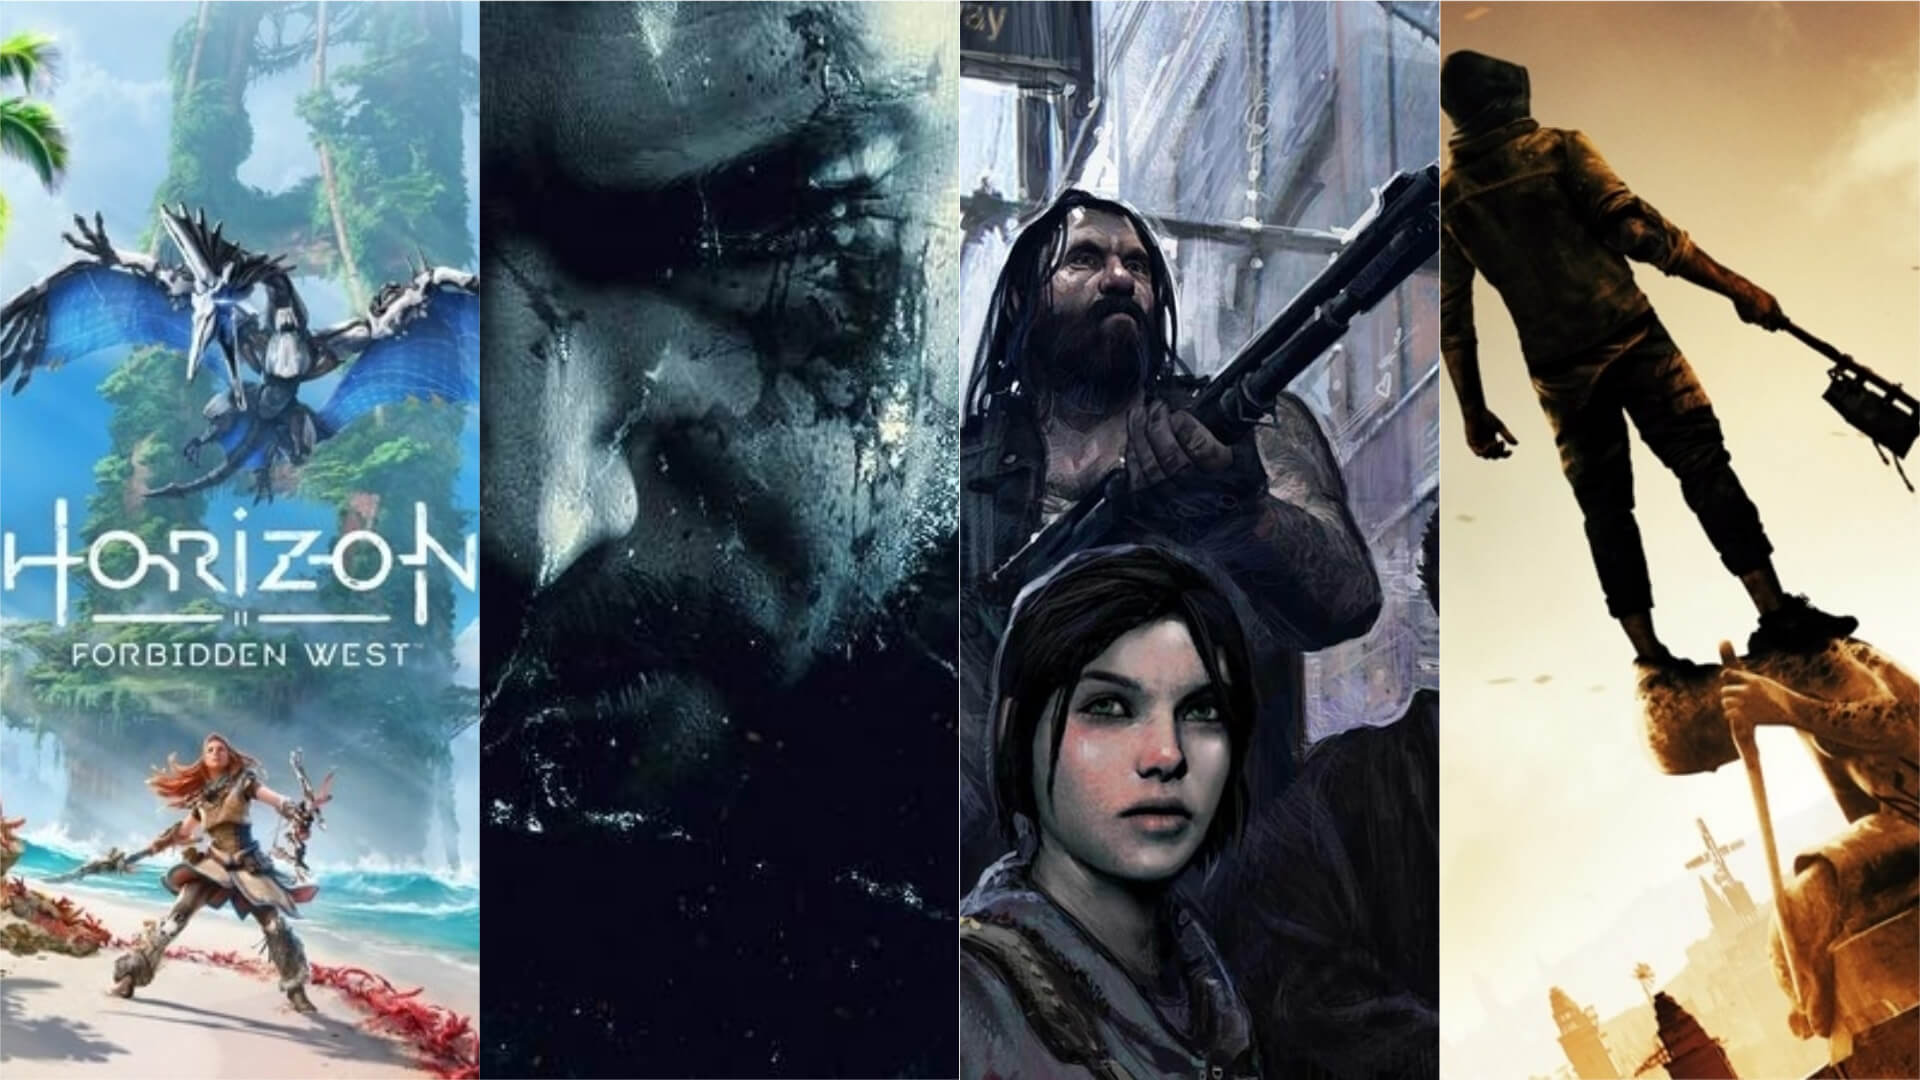 The Top 10 Most Anticipated Games of 2021